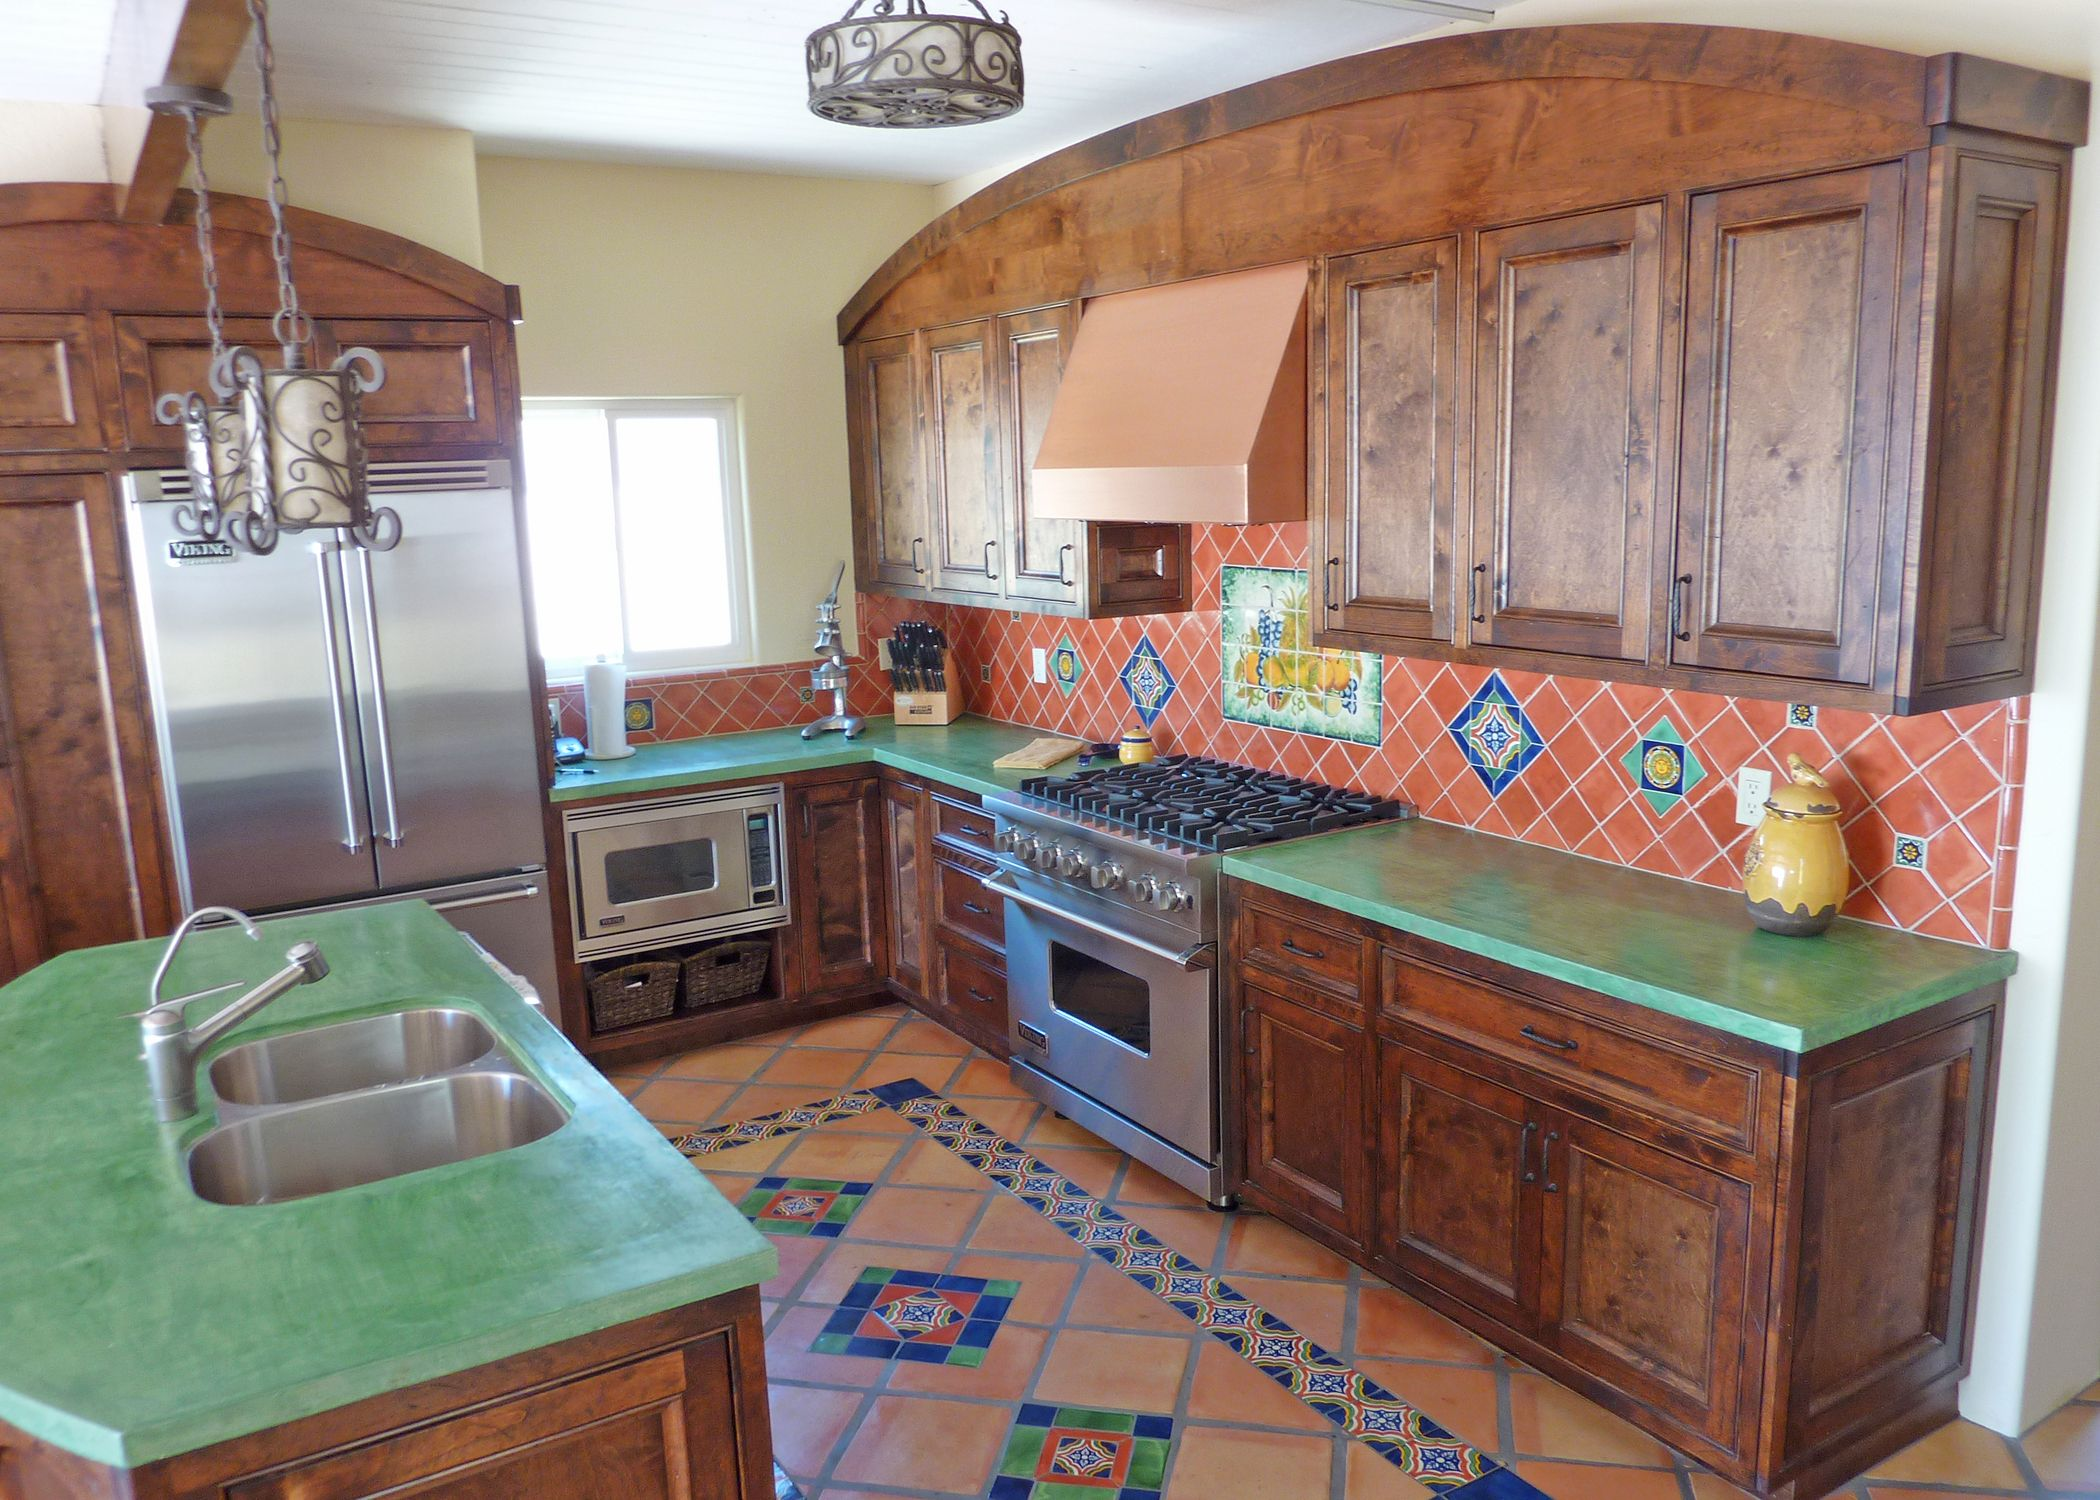 Mexican Tile Kitchen Ideas Kitchen Remodel Using Mexican Tiles Tiles